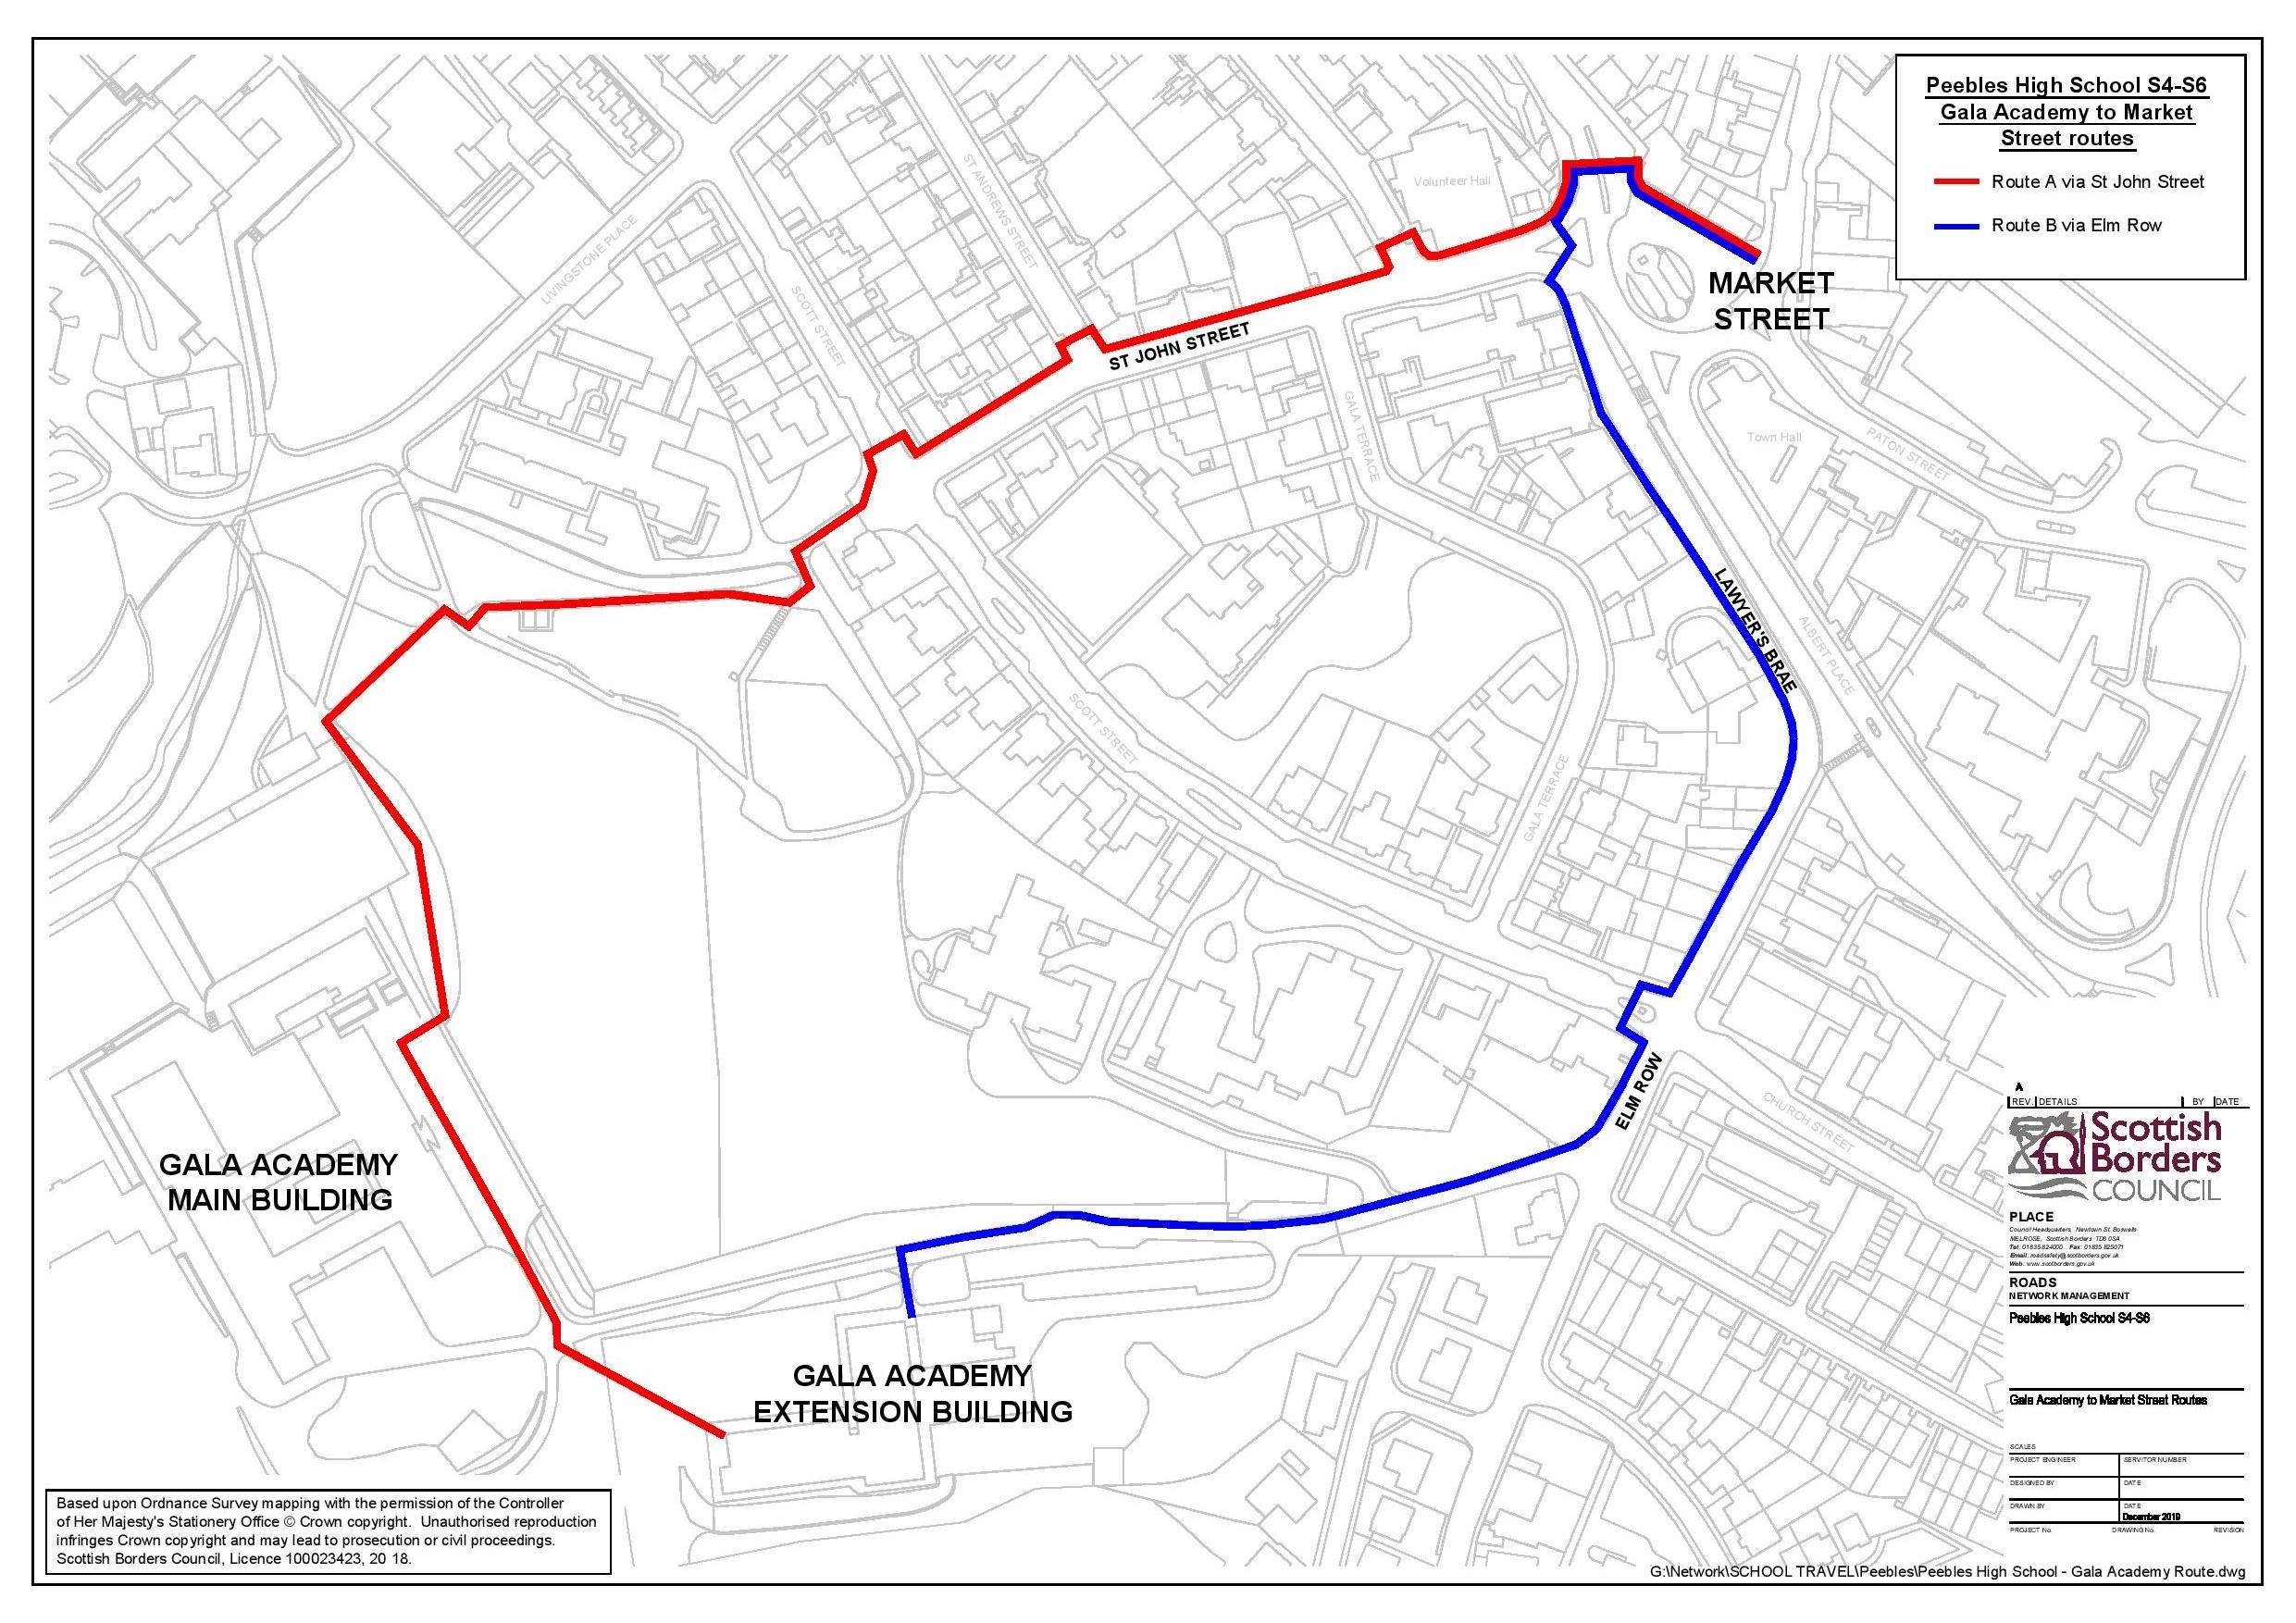 PHS S4-S6 walking routes